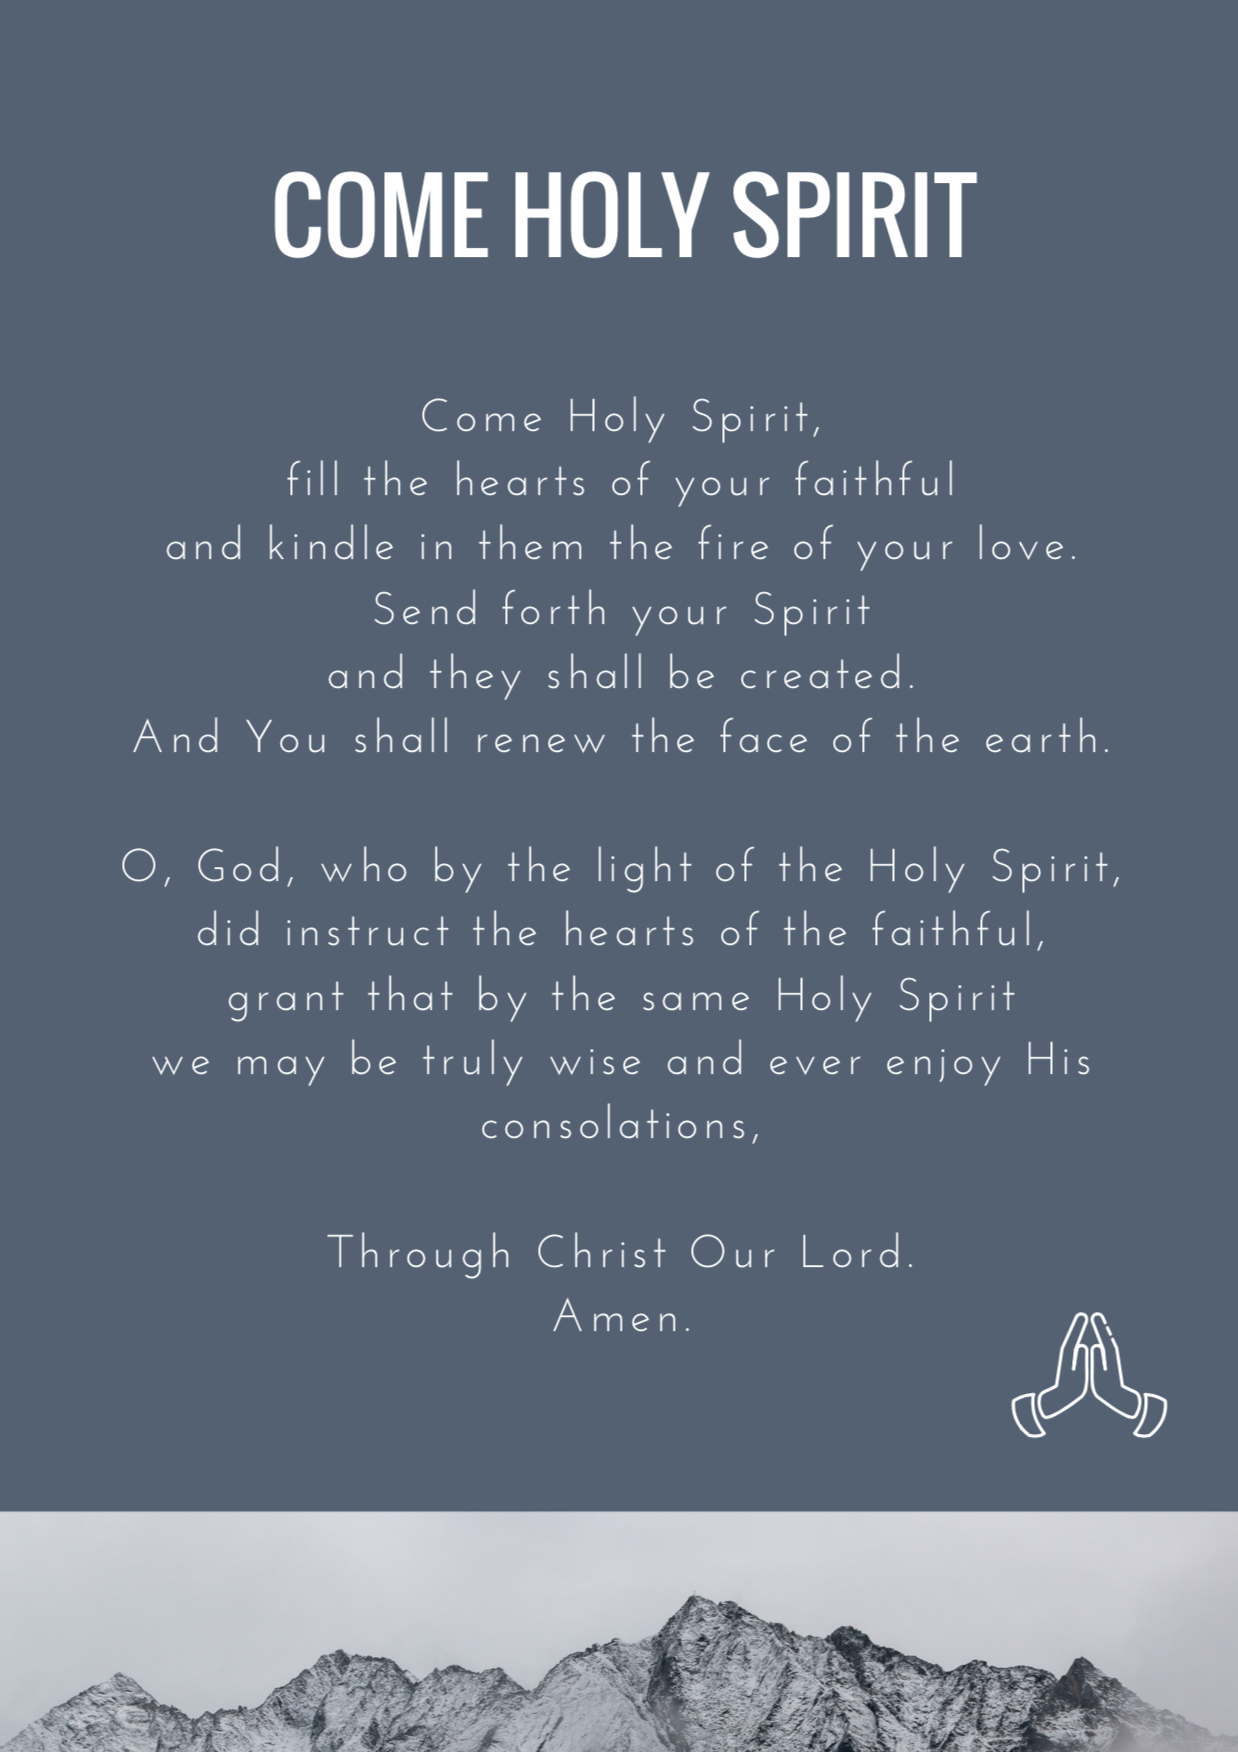 God Is Good - Come Holy Spirit.png